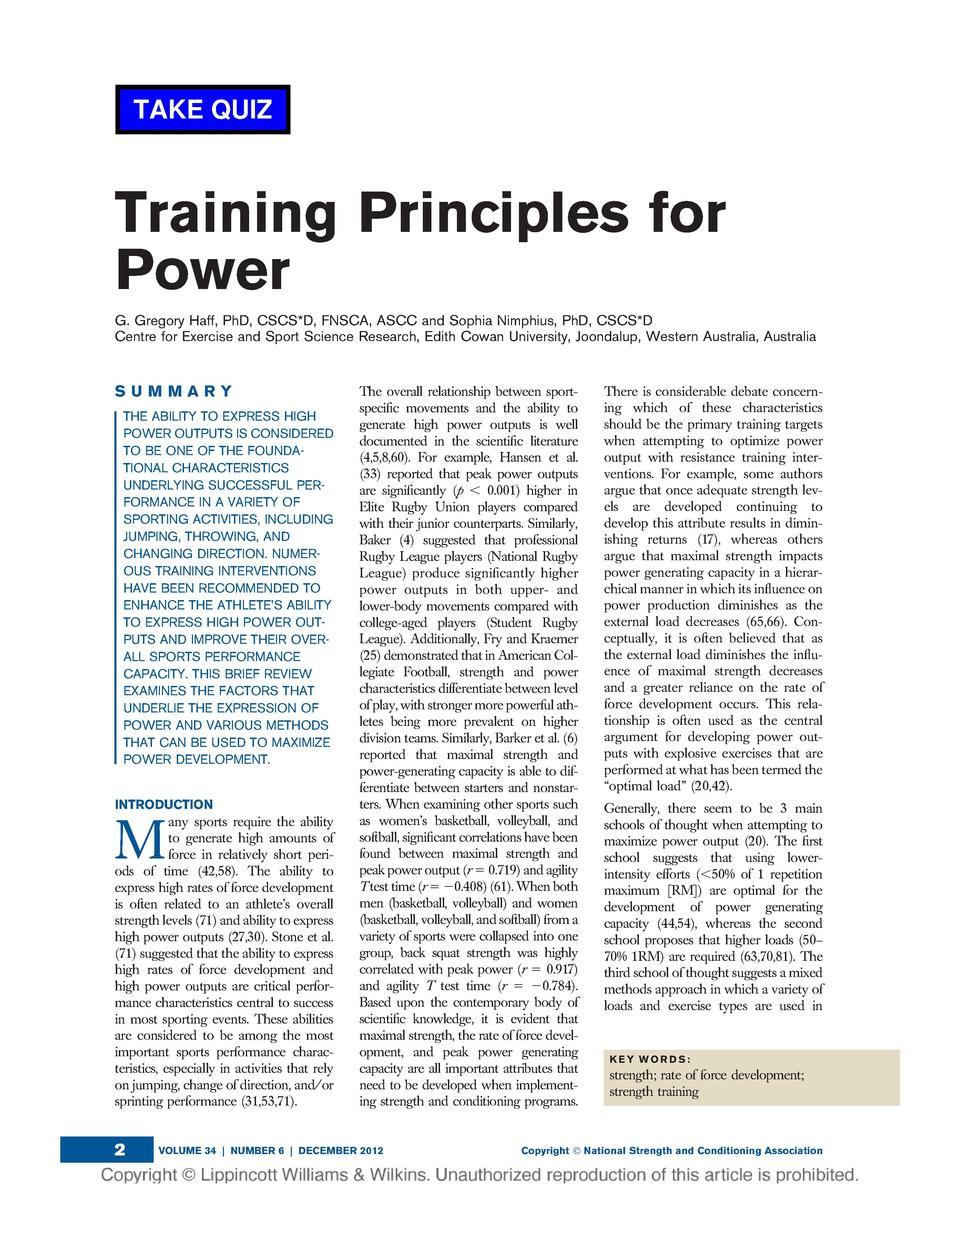 TAKE QUIZ  Training Principles for Power G. Gregory Haff, PhD, CSCS D, FNSCA, ASCC and Sophia Nimphius, PhD, CSCS D Centre...